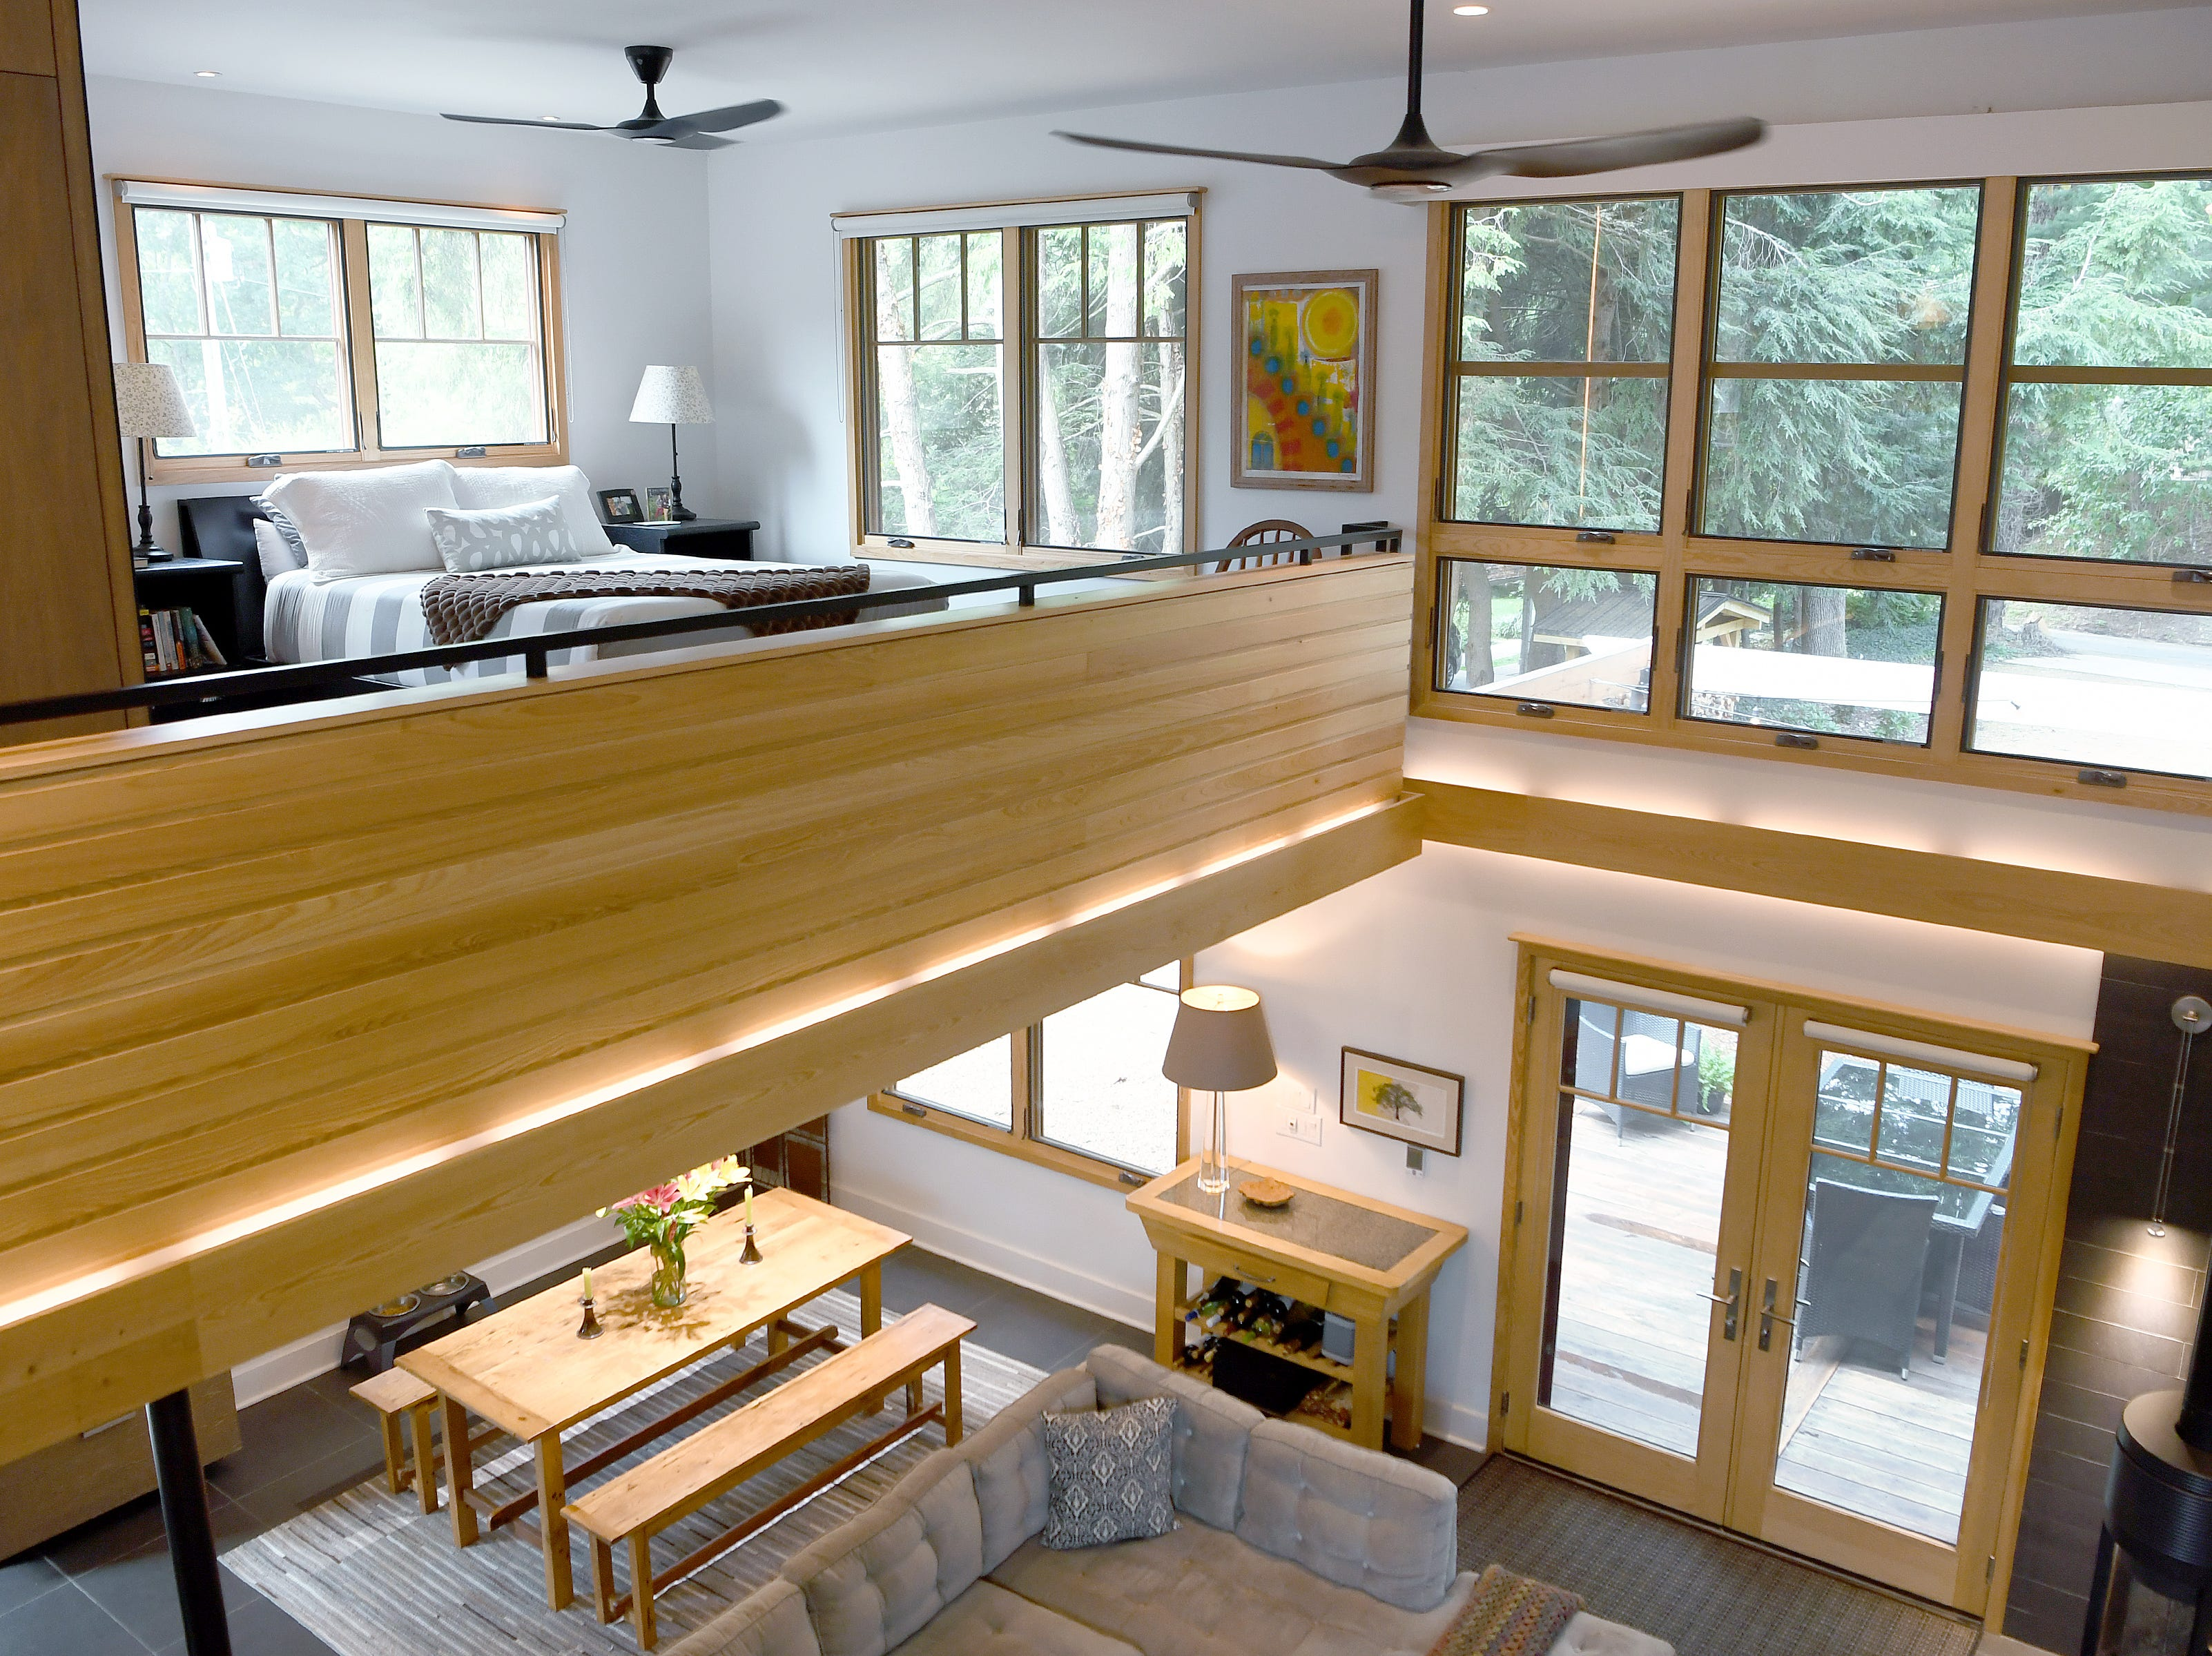 Annie Lundahl and Mary Ann Myers' North Asheville home was once an apartment complex and is now an open loft-style home with lots of windows to bring the outdoors in with modern design features.